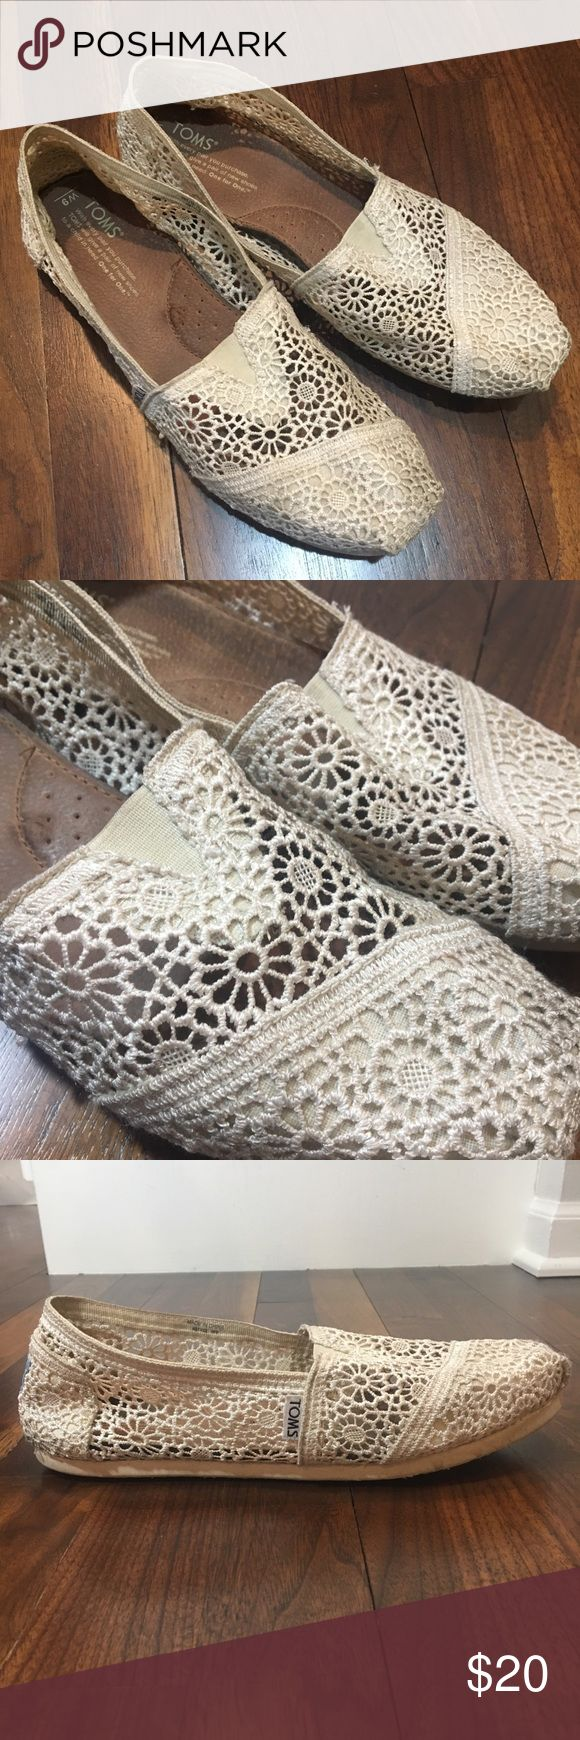 TOMS Cream Lace Classic Women's Toms Size 9 These lace Toms are in good used condition. Some wear shoes on the bottom (pictured), and there's a dark spot on the back of one of the heels (pictured). No thinning in the toes (common sign of wear in Toms). Size 9. Toms Shoes